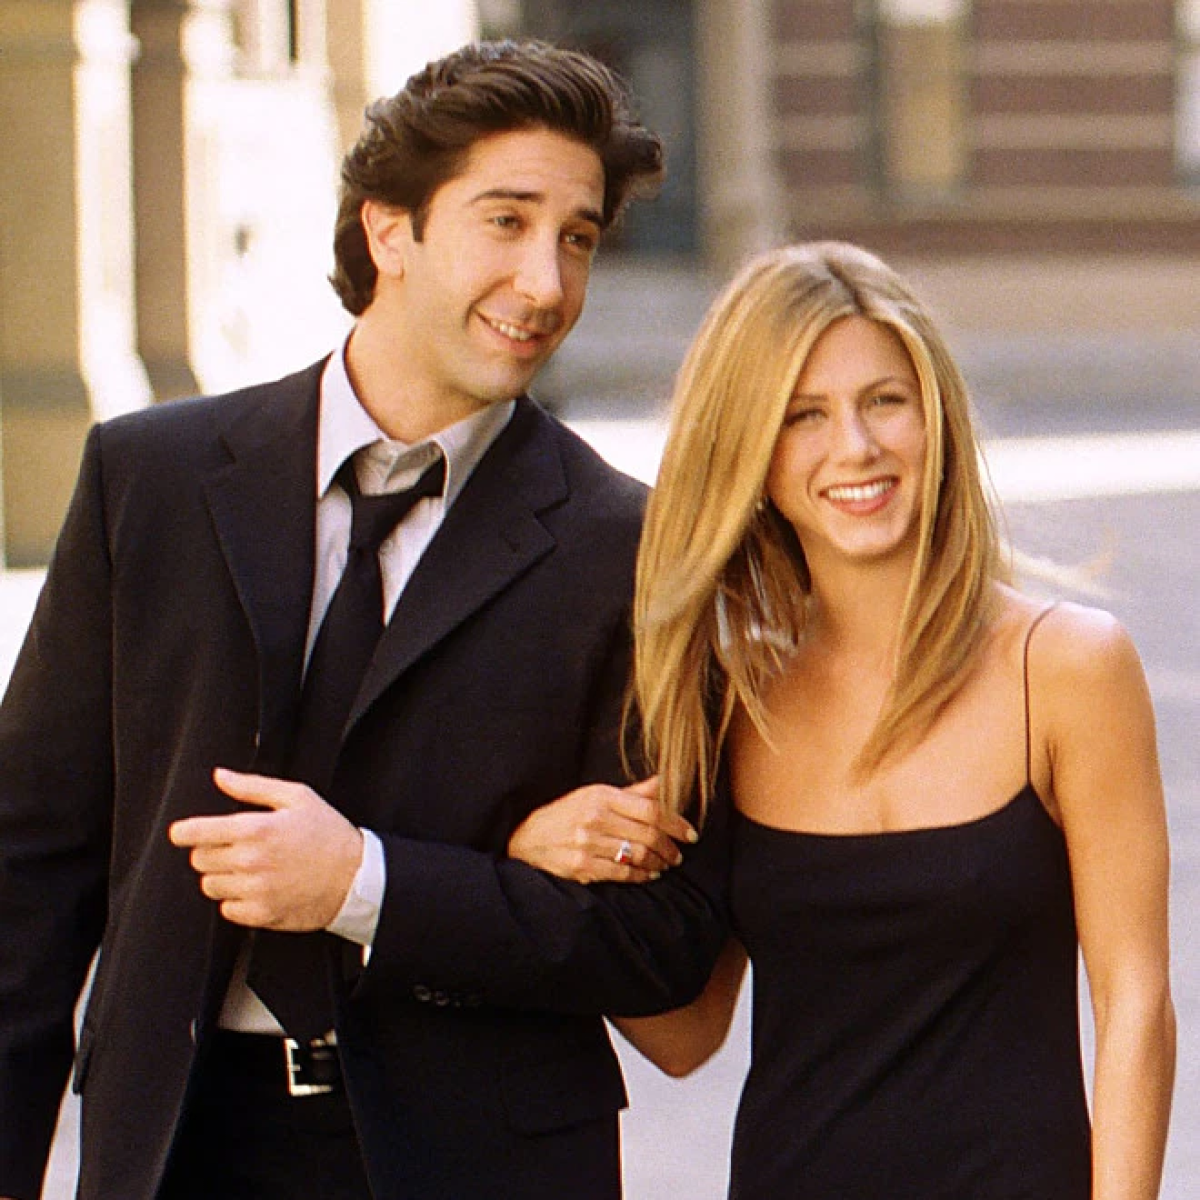 'Friends Reunion': Jennifer Aniston, David Schwimmer reveal they were 'crushing hard on each other' in real life